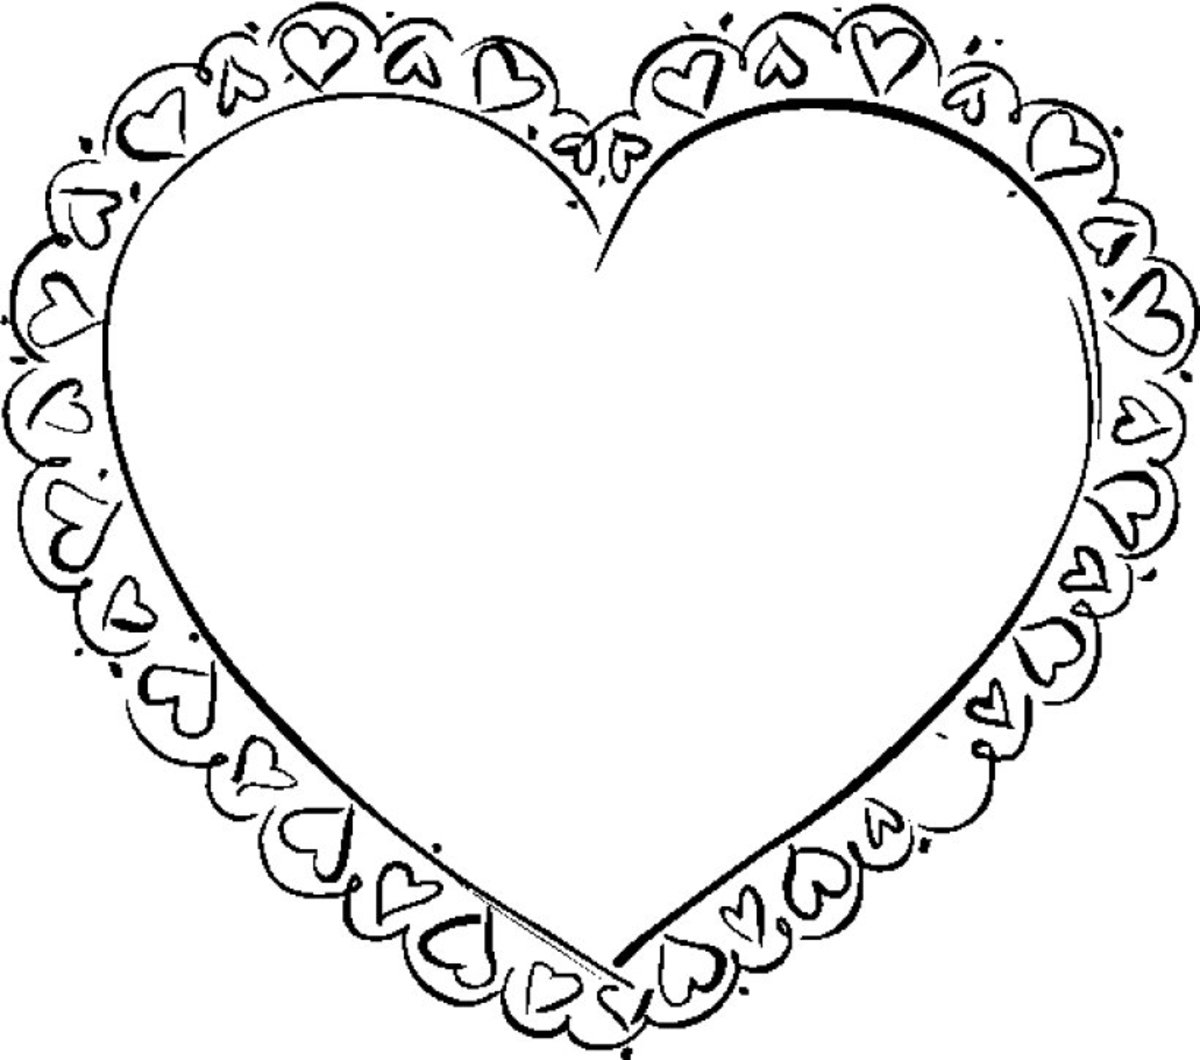 Heart coloring frame picture